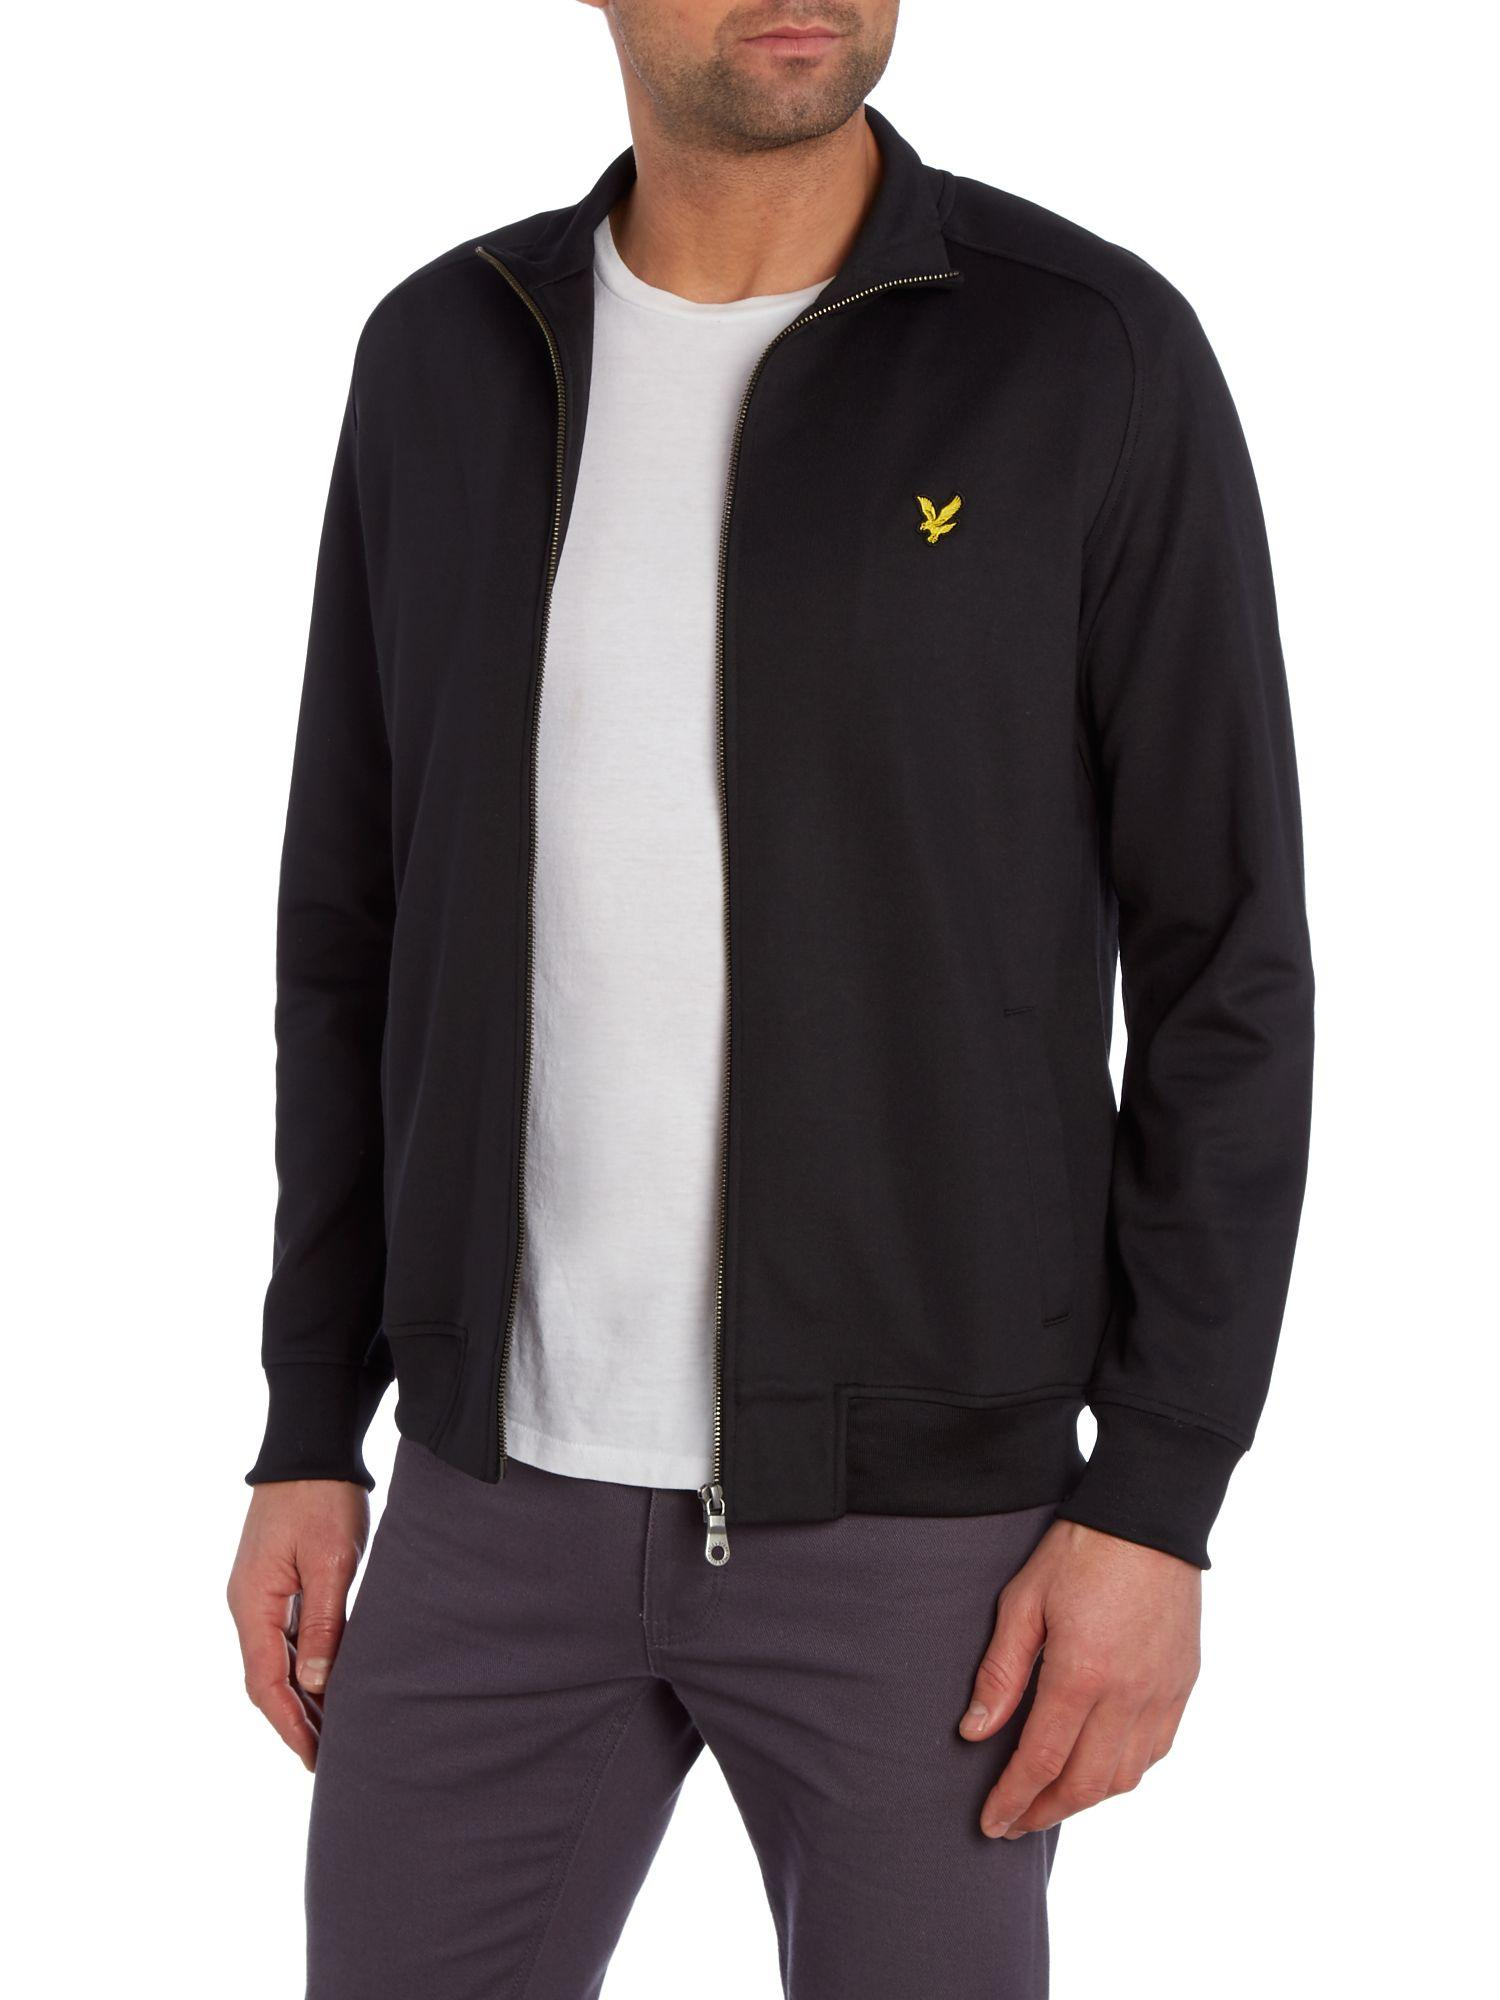 Lyle & Scott Zip Through Tricot Jacket in Black for Men